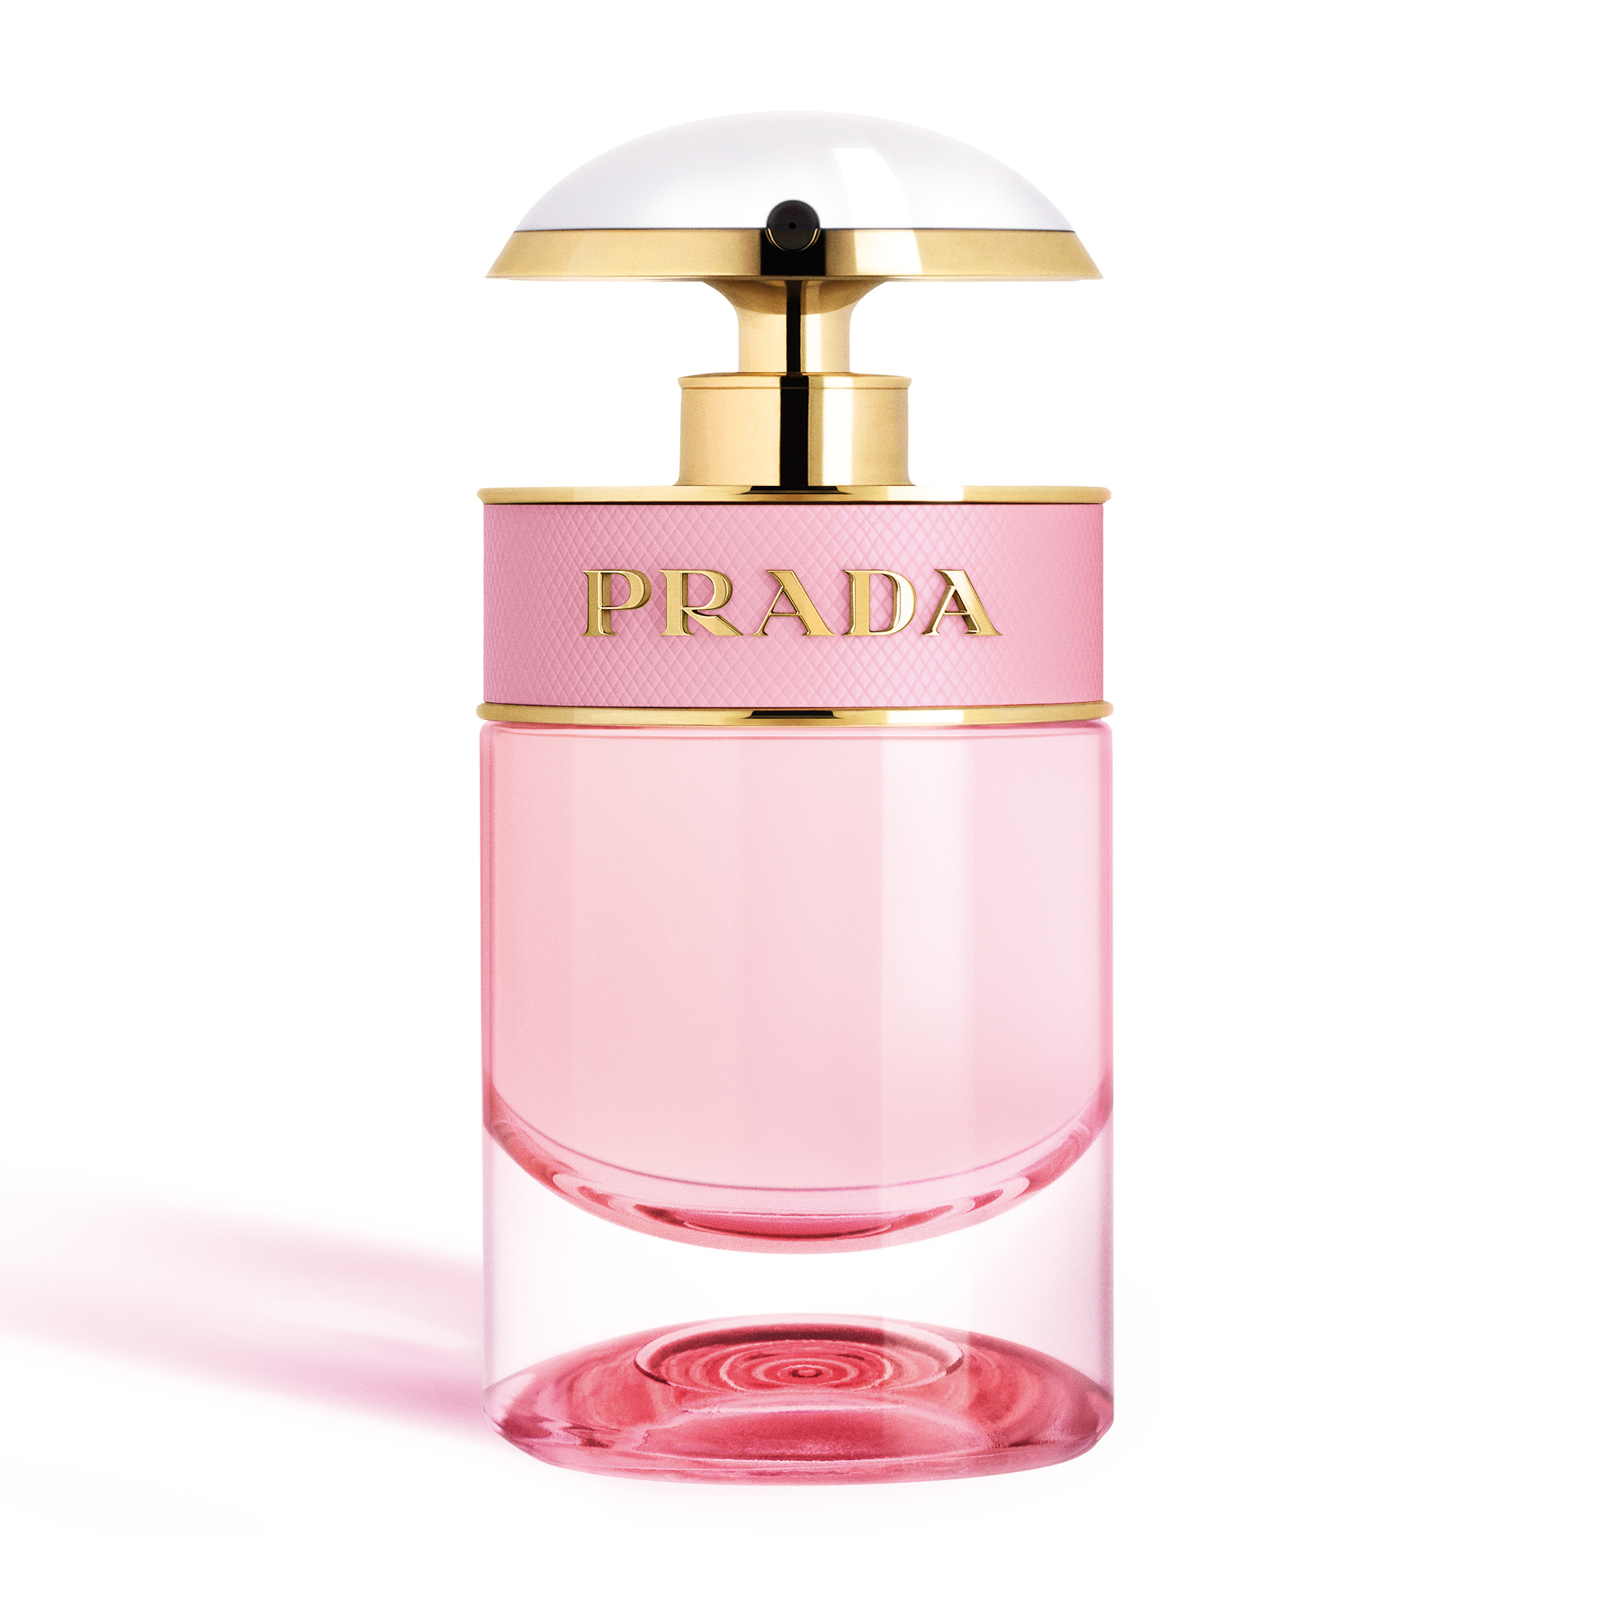 3c483eb95 Prada Candy Florale - Eau de Toilette For Women 80 ml